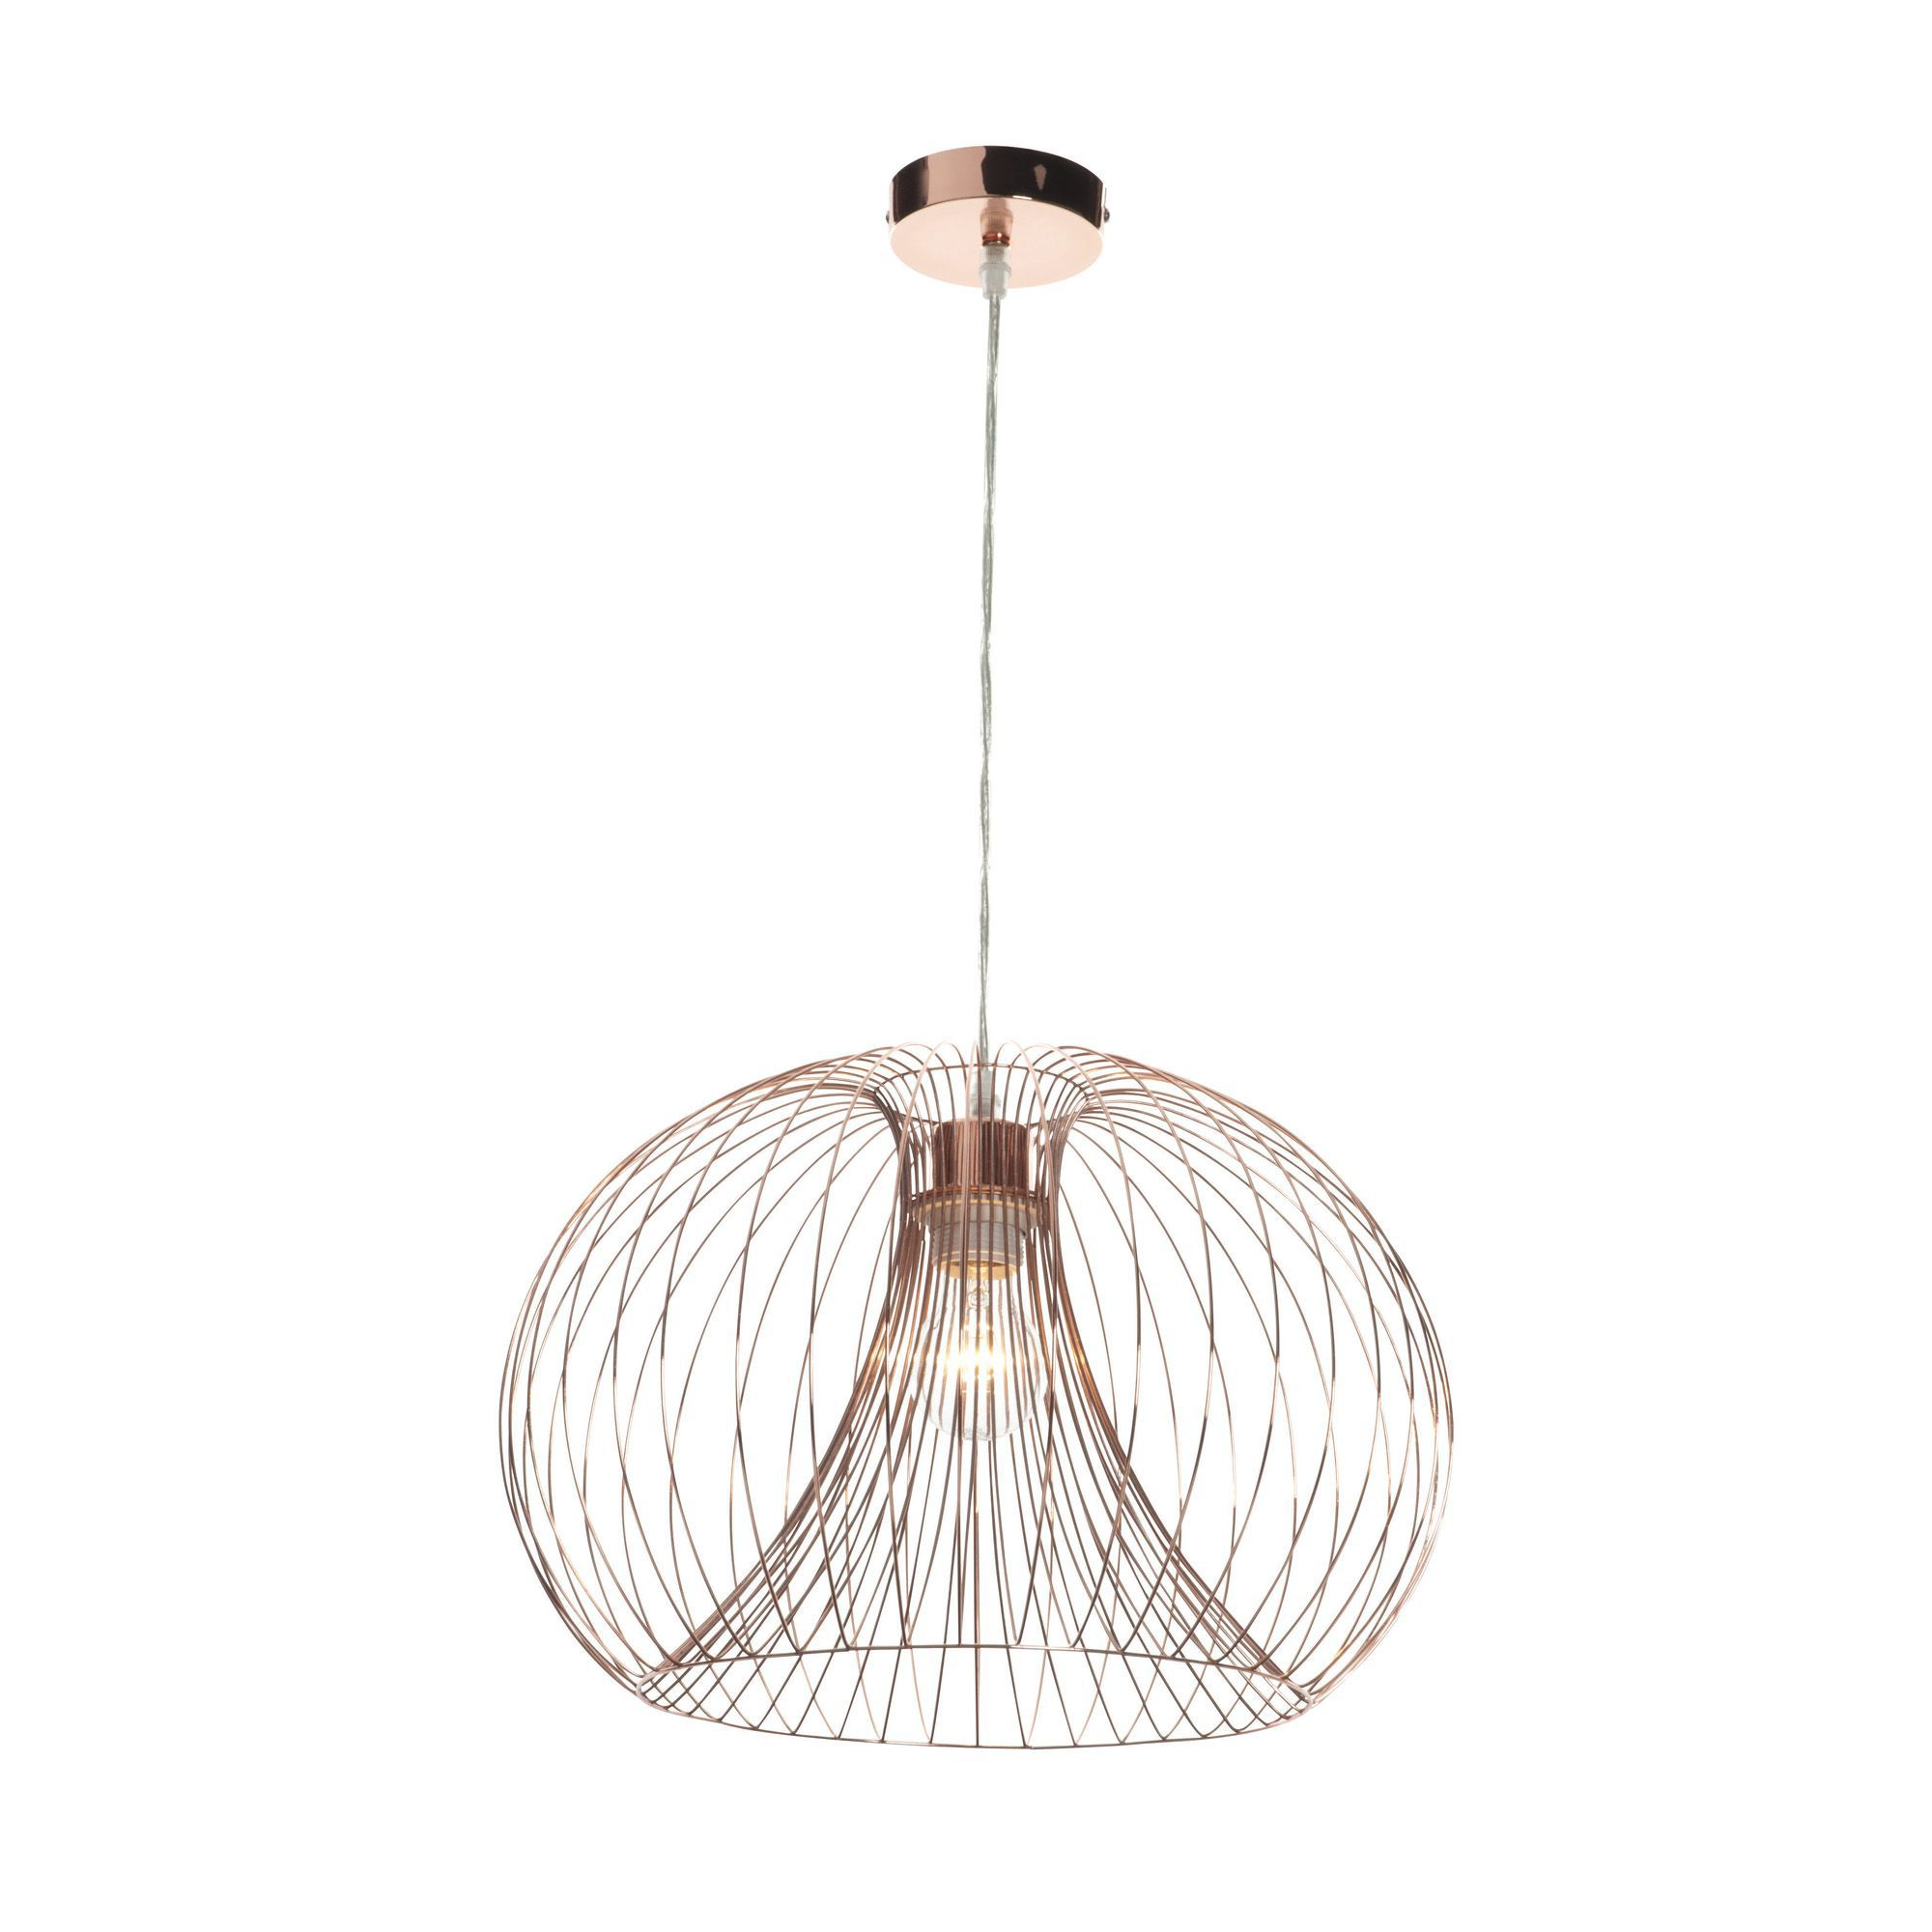 Bathroom Ceiling Lights At B&Q jonas pendant ceiling light | departments |  diy at b&q